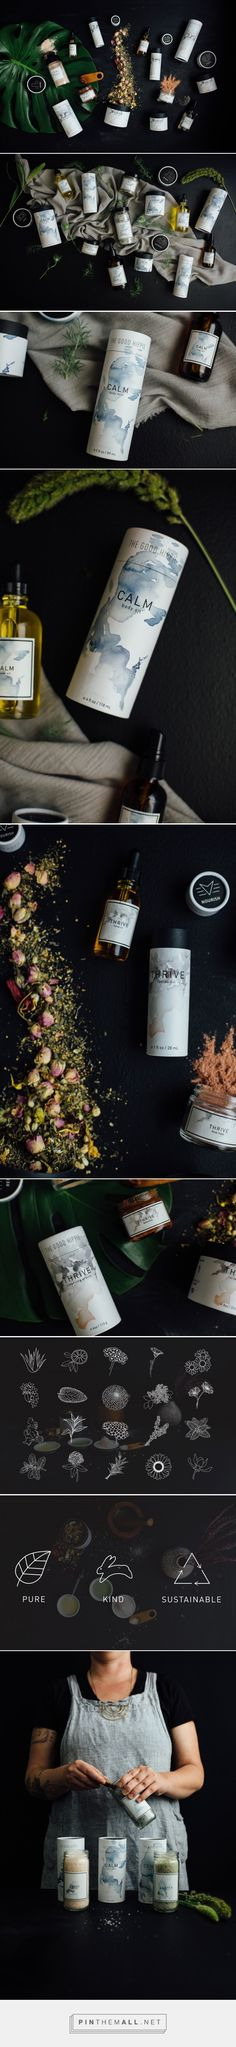 The Good Hippie: Artisan Skincare + Beauty - Packaging of the World - Creative Package Design Gallery - http://www.packagingoftheworld.com/2016/09/the-good-hippie-artisan-skincare-beauty.html